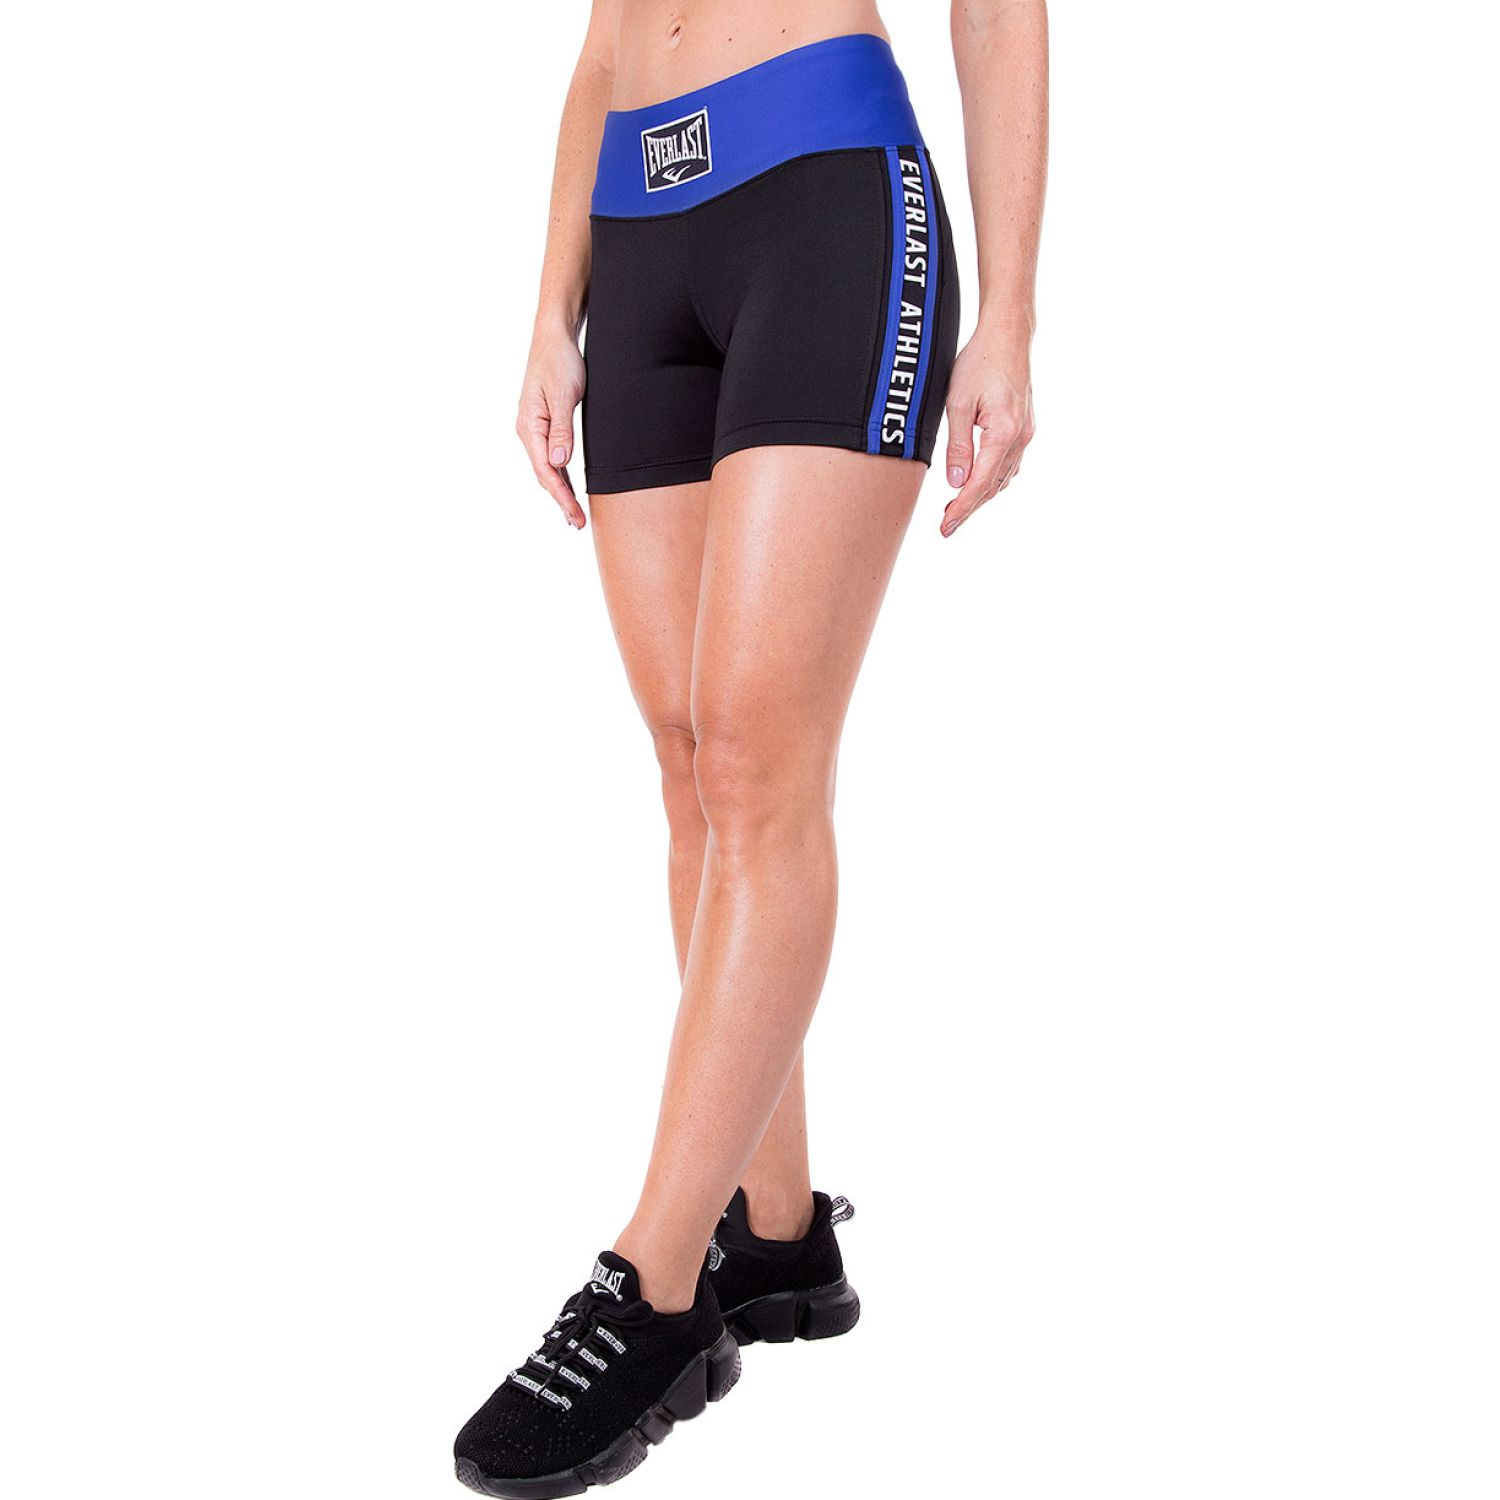 Everlast legging short ray Negro / azul Shorts Deportivos